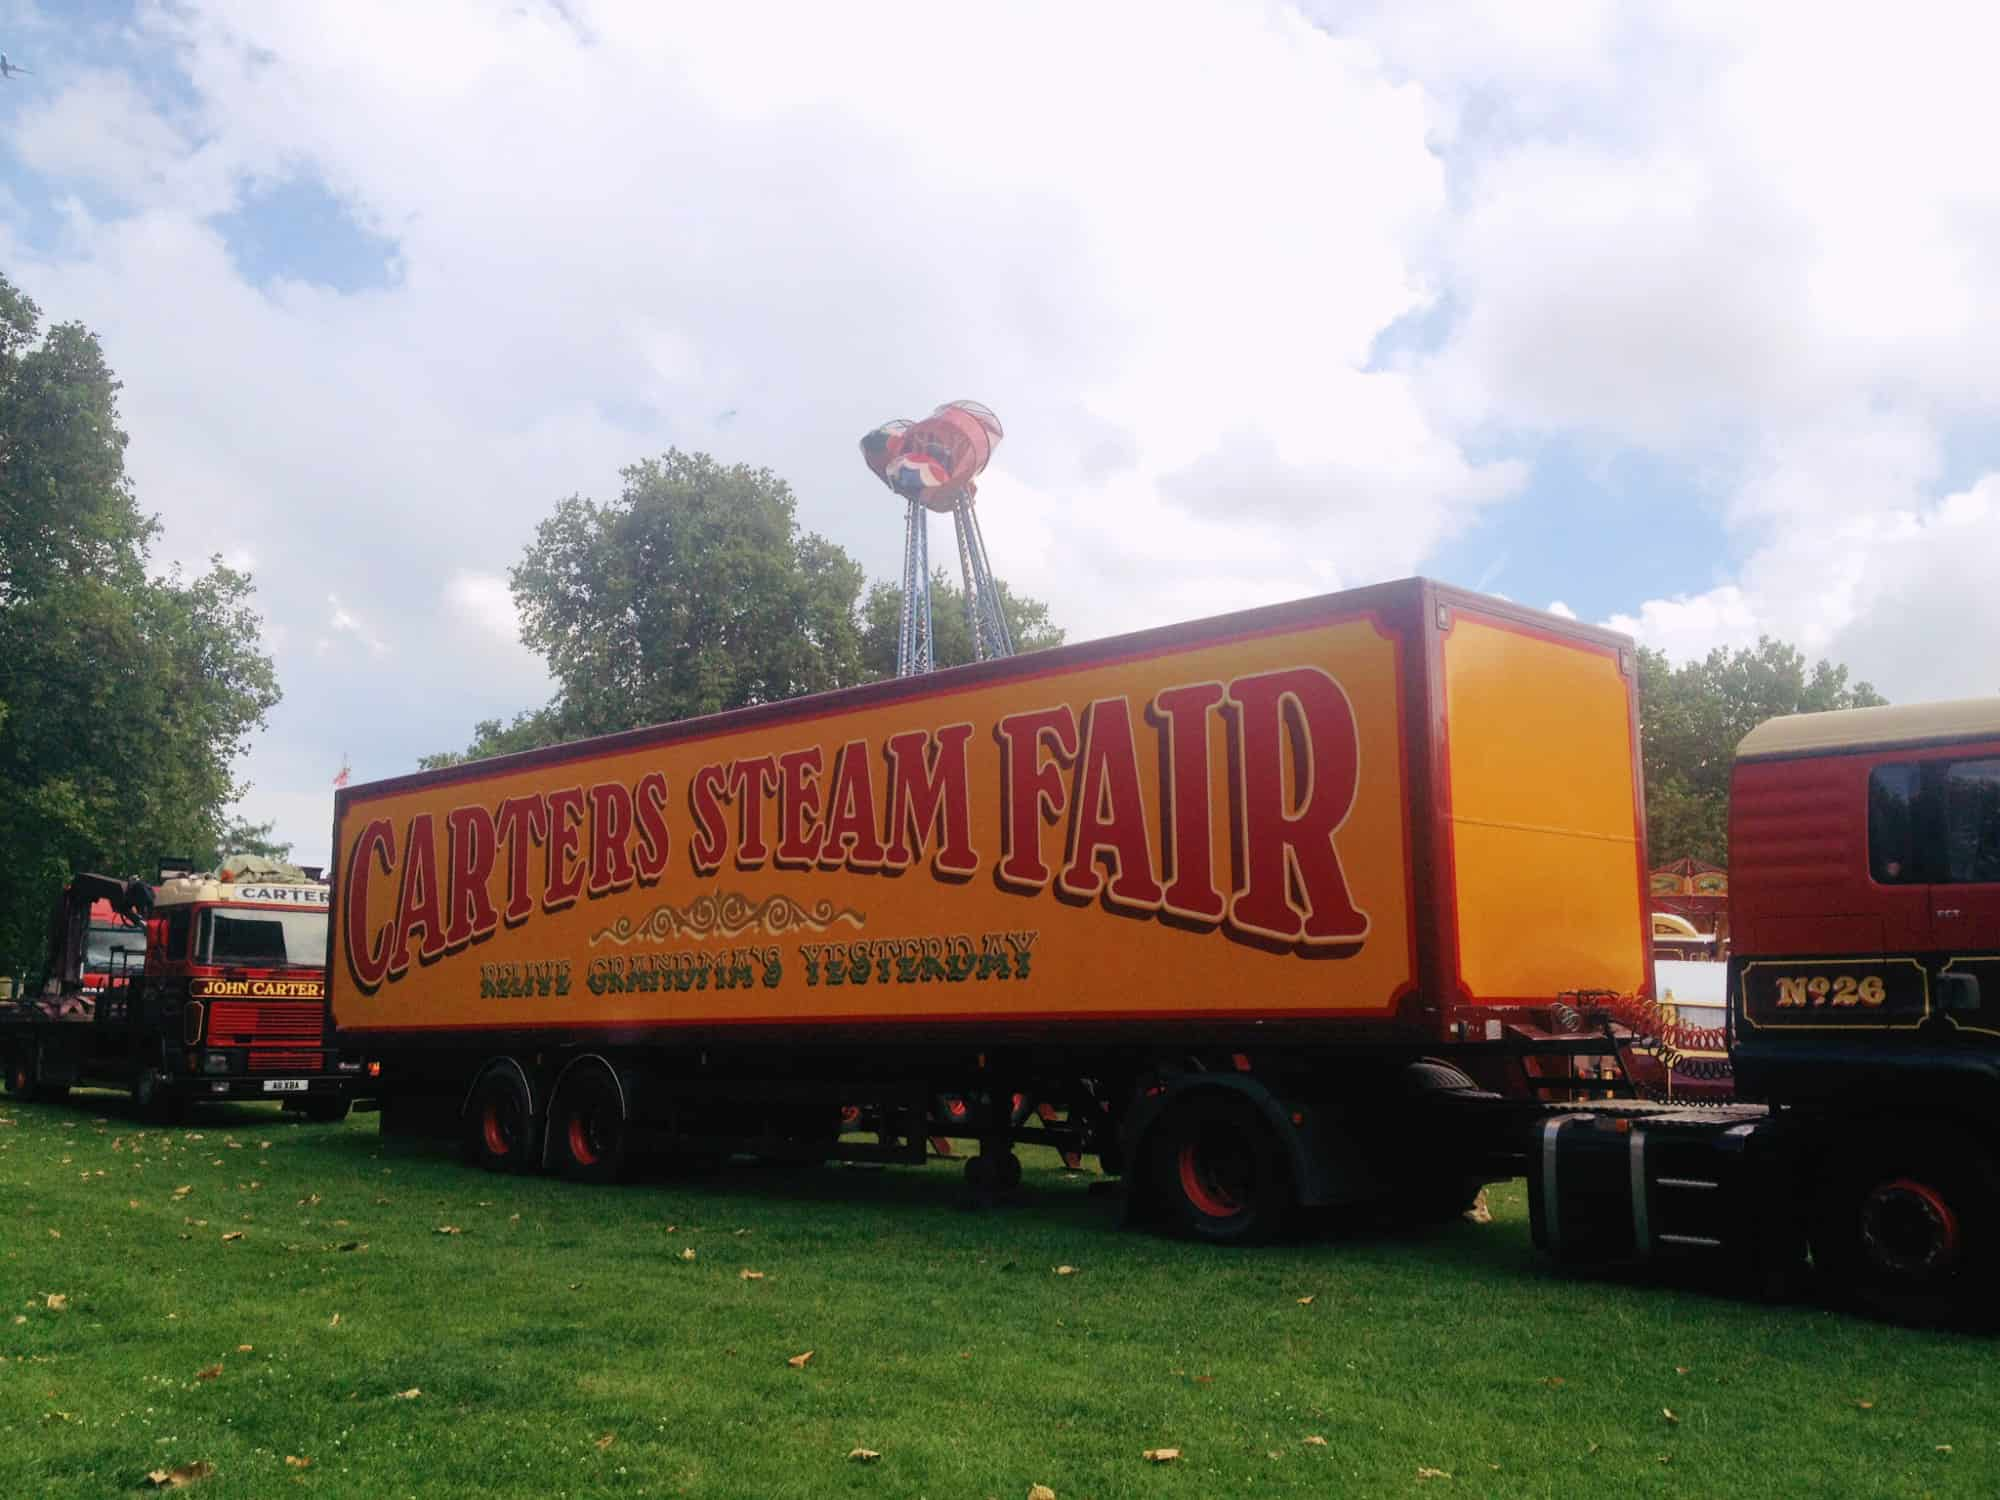 Family Fun at Carters Steam Fair